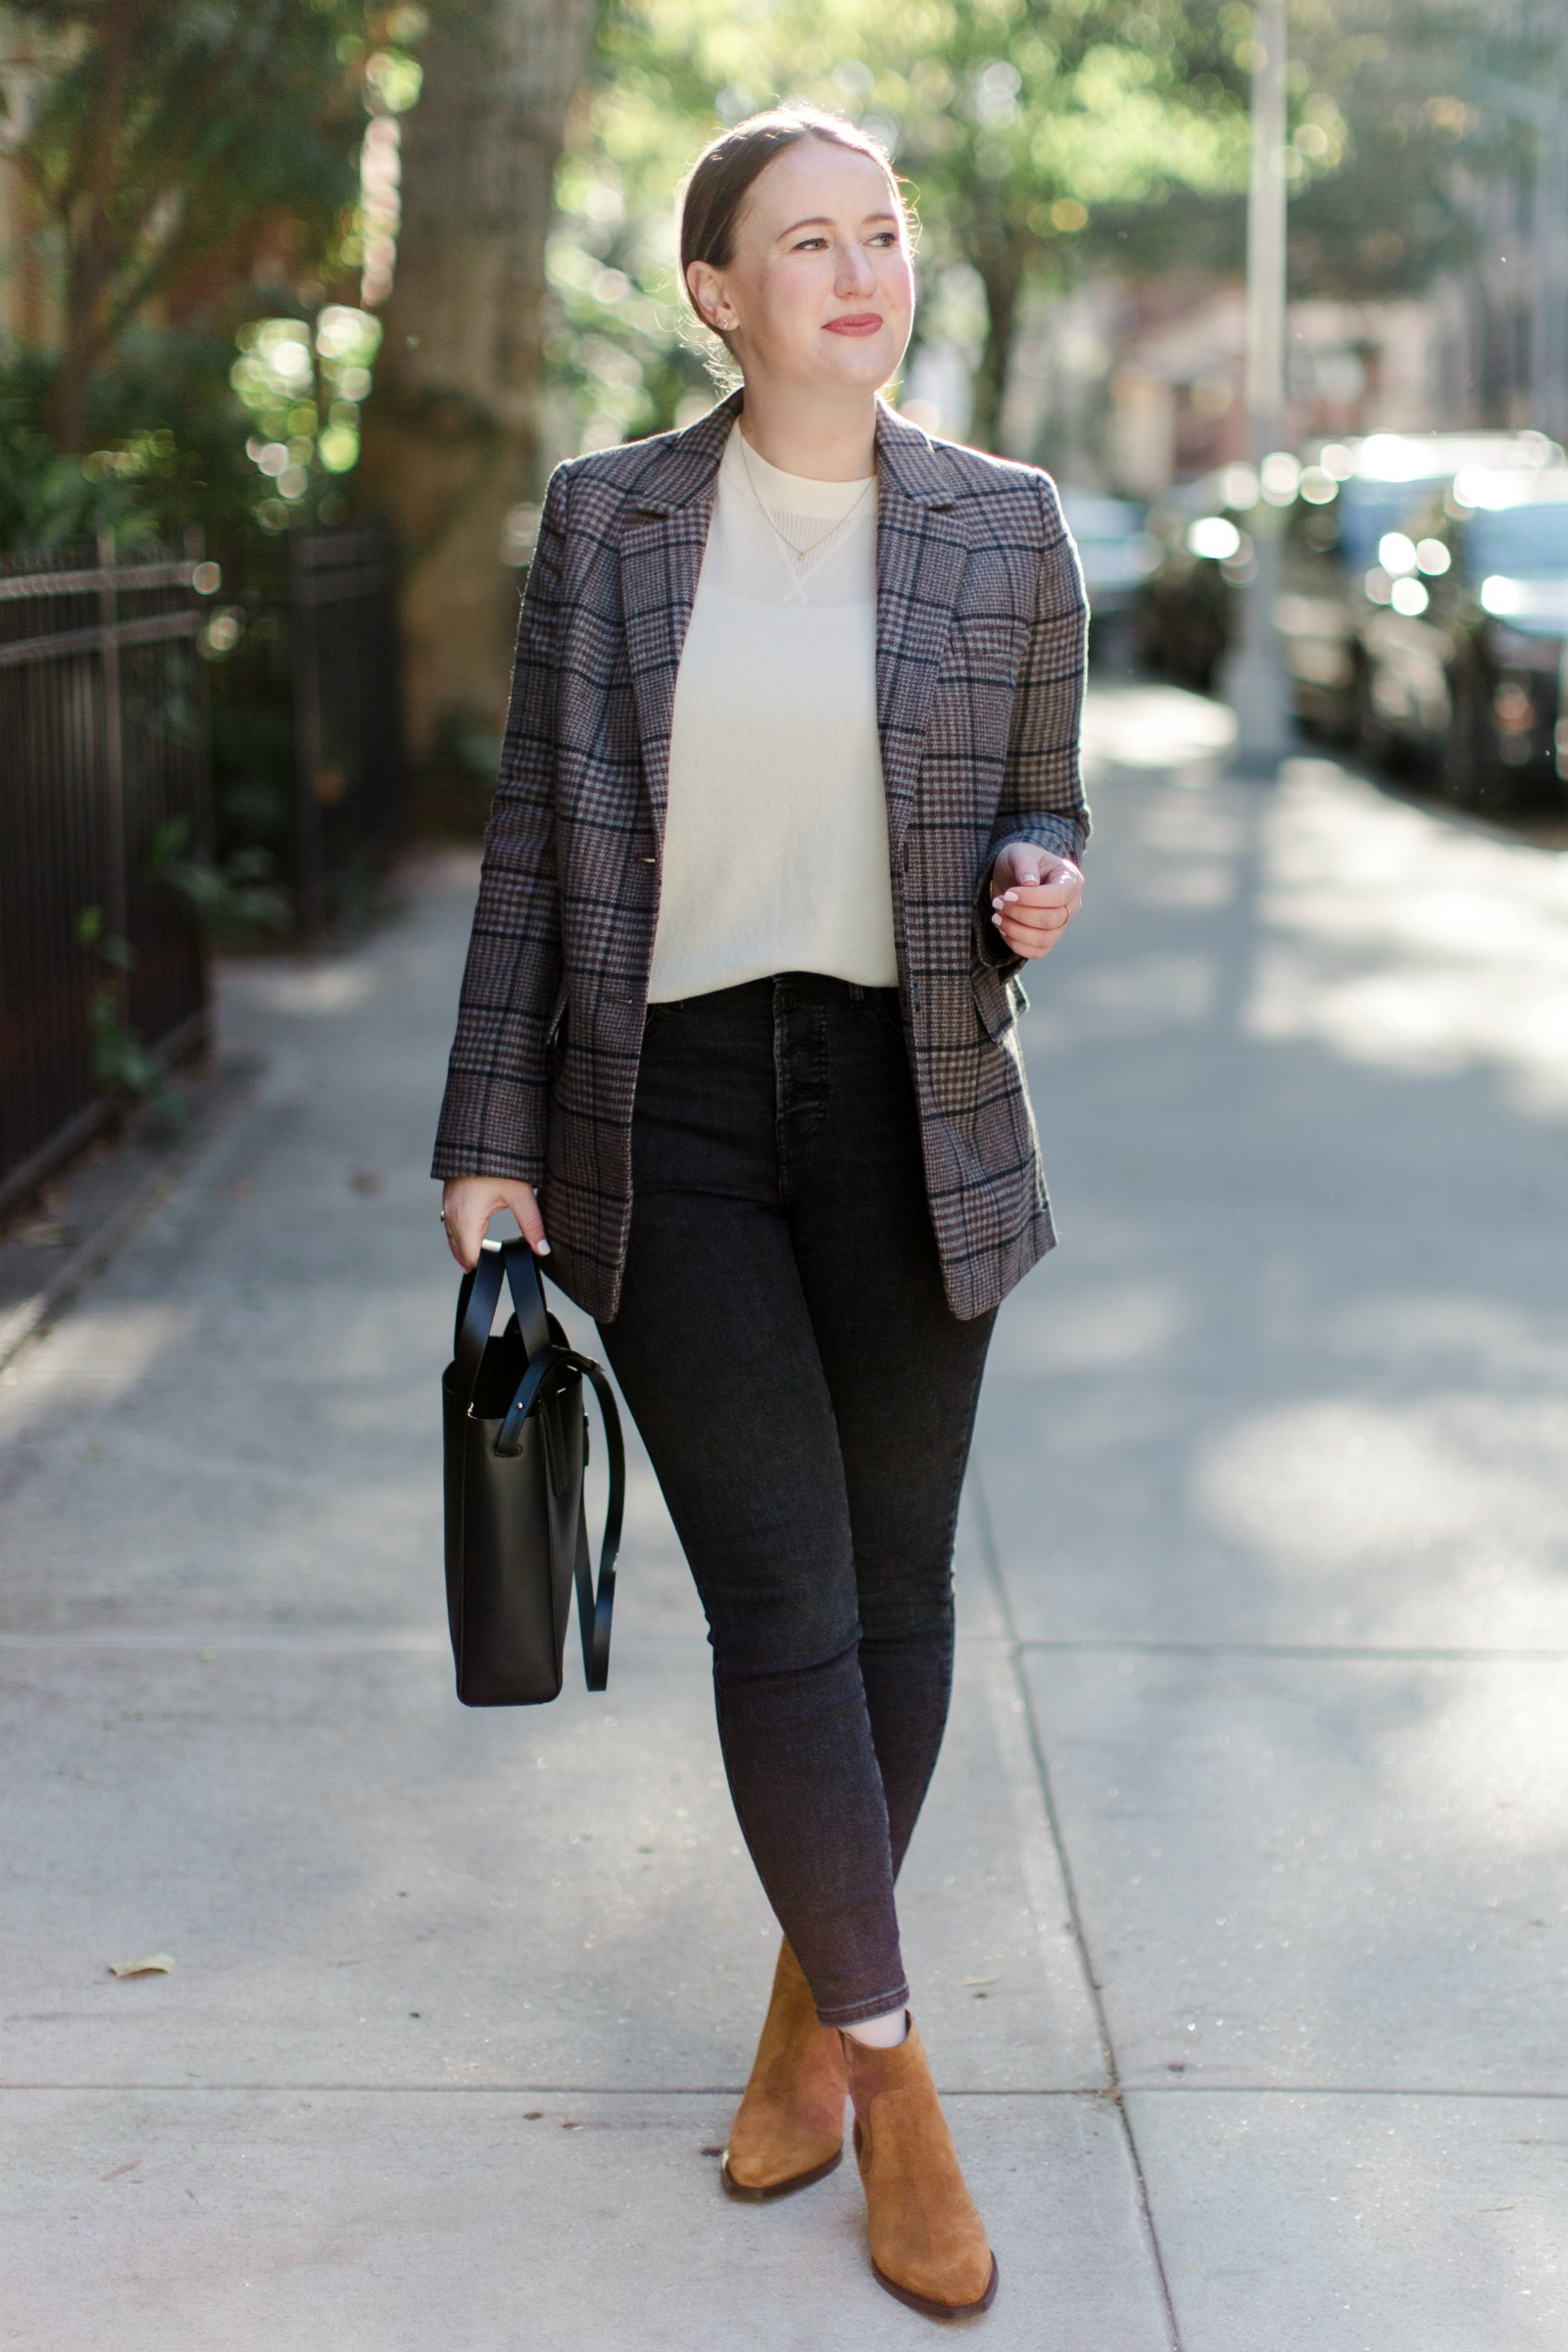 Everlane Boots and Blazers I wit & whimsy - FALL/WINTER WARDROBE STAPLES